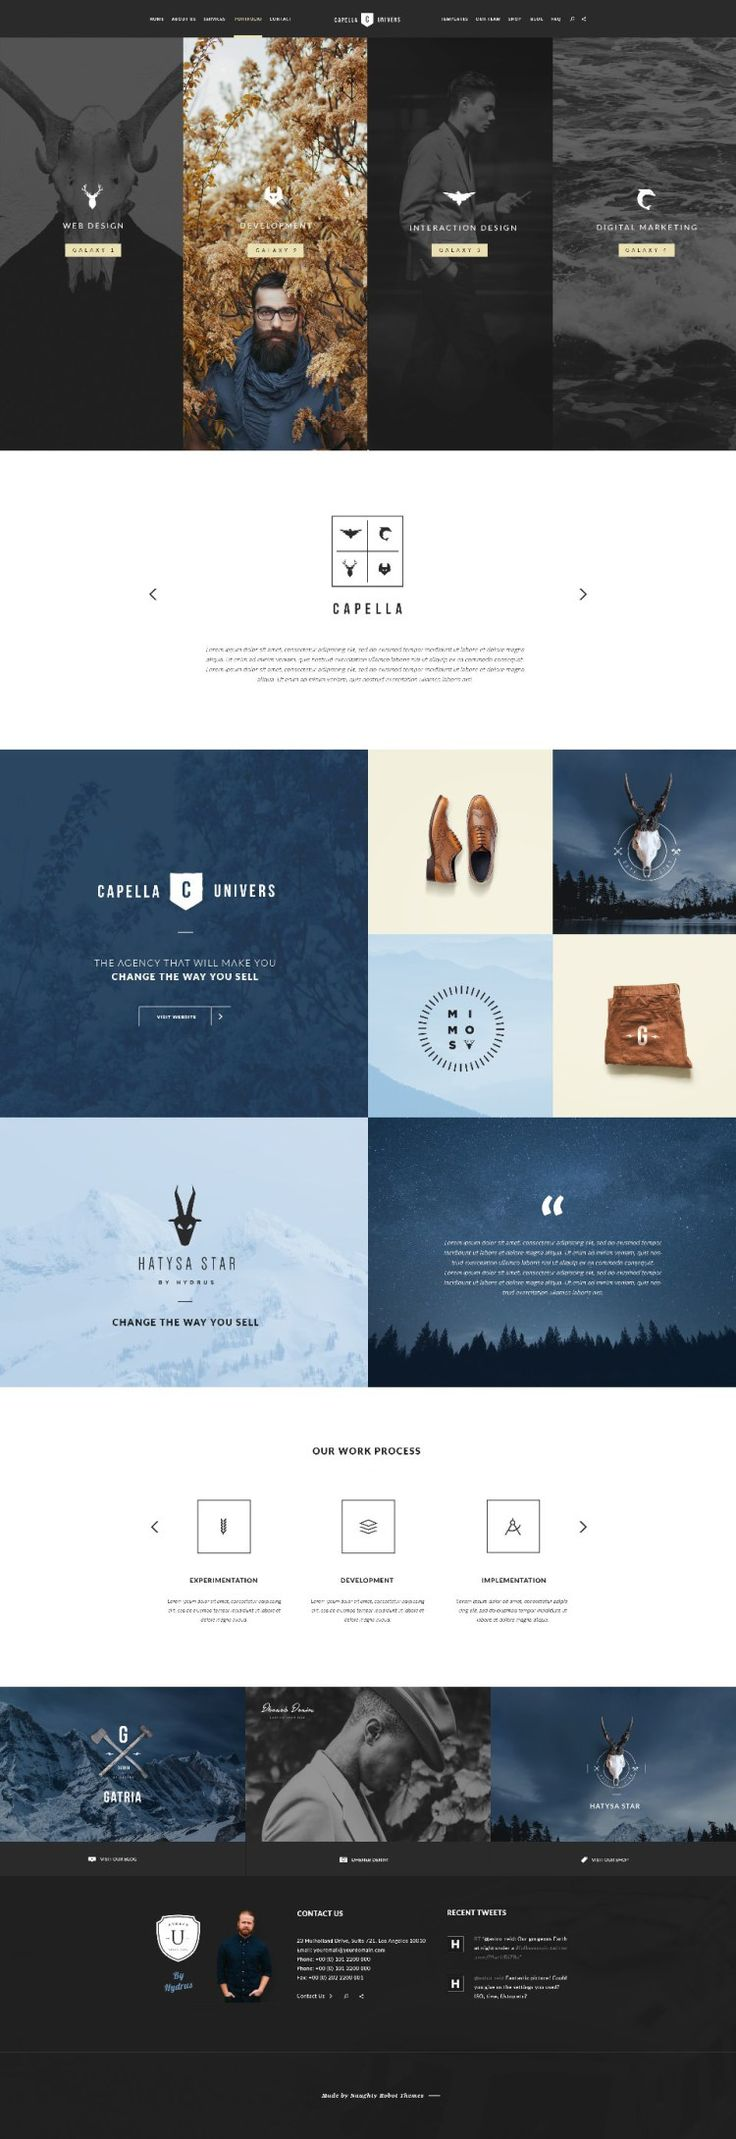 17 best ideas about web design on pinterest website website layout and ui design